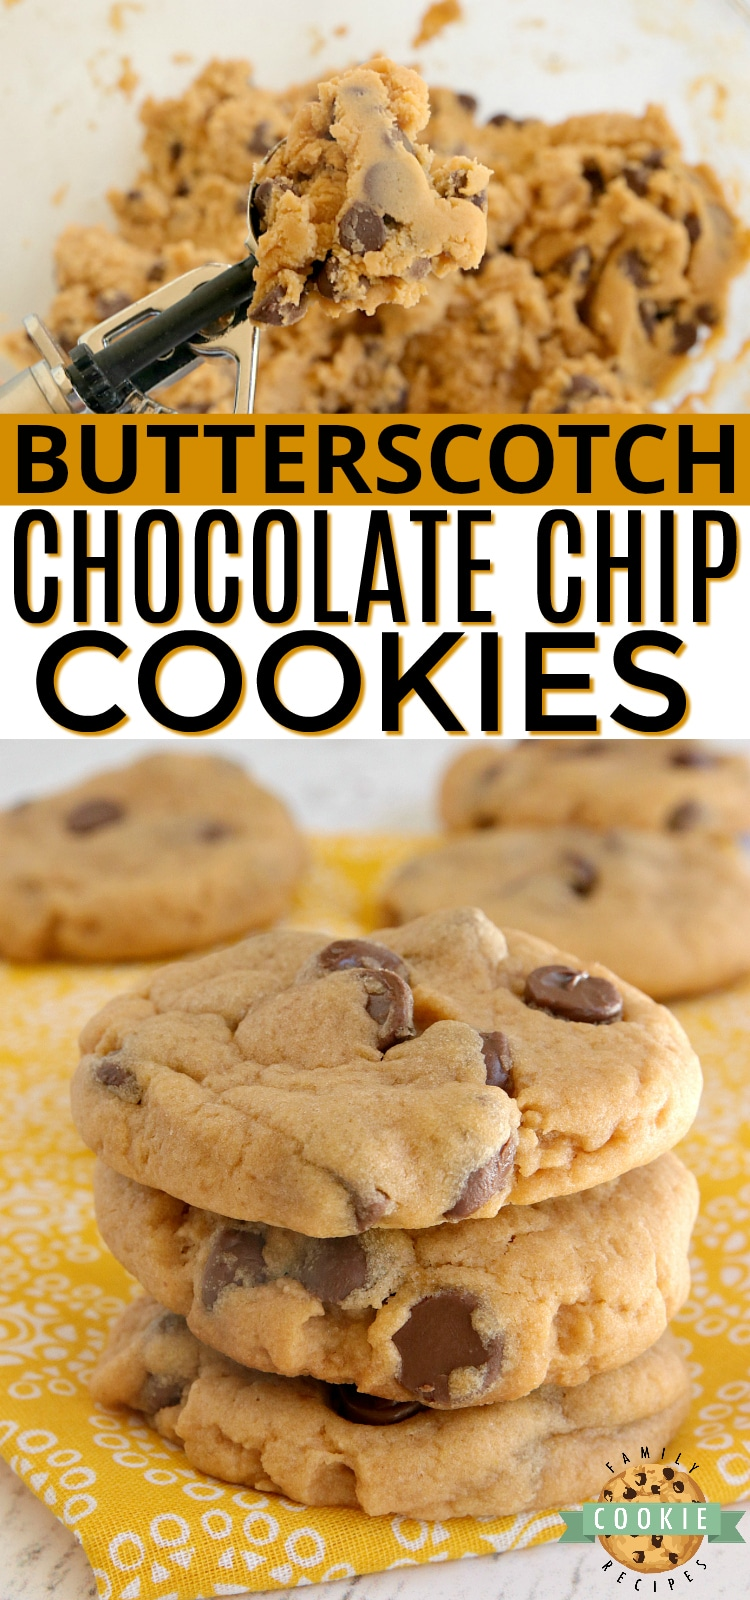 Butterscotch Chocolate Chip Cookies made with butterscotch pudding mix and milk chocolate chips. Amazingly soft and chewy cookies bursting with butterscotch flavor. via @familycookierecipes